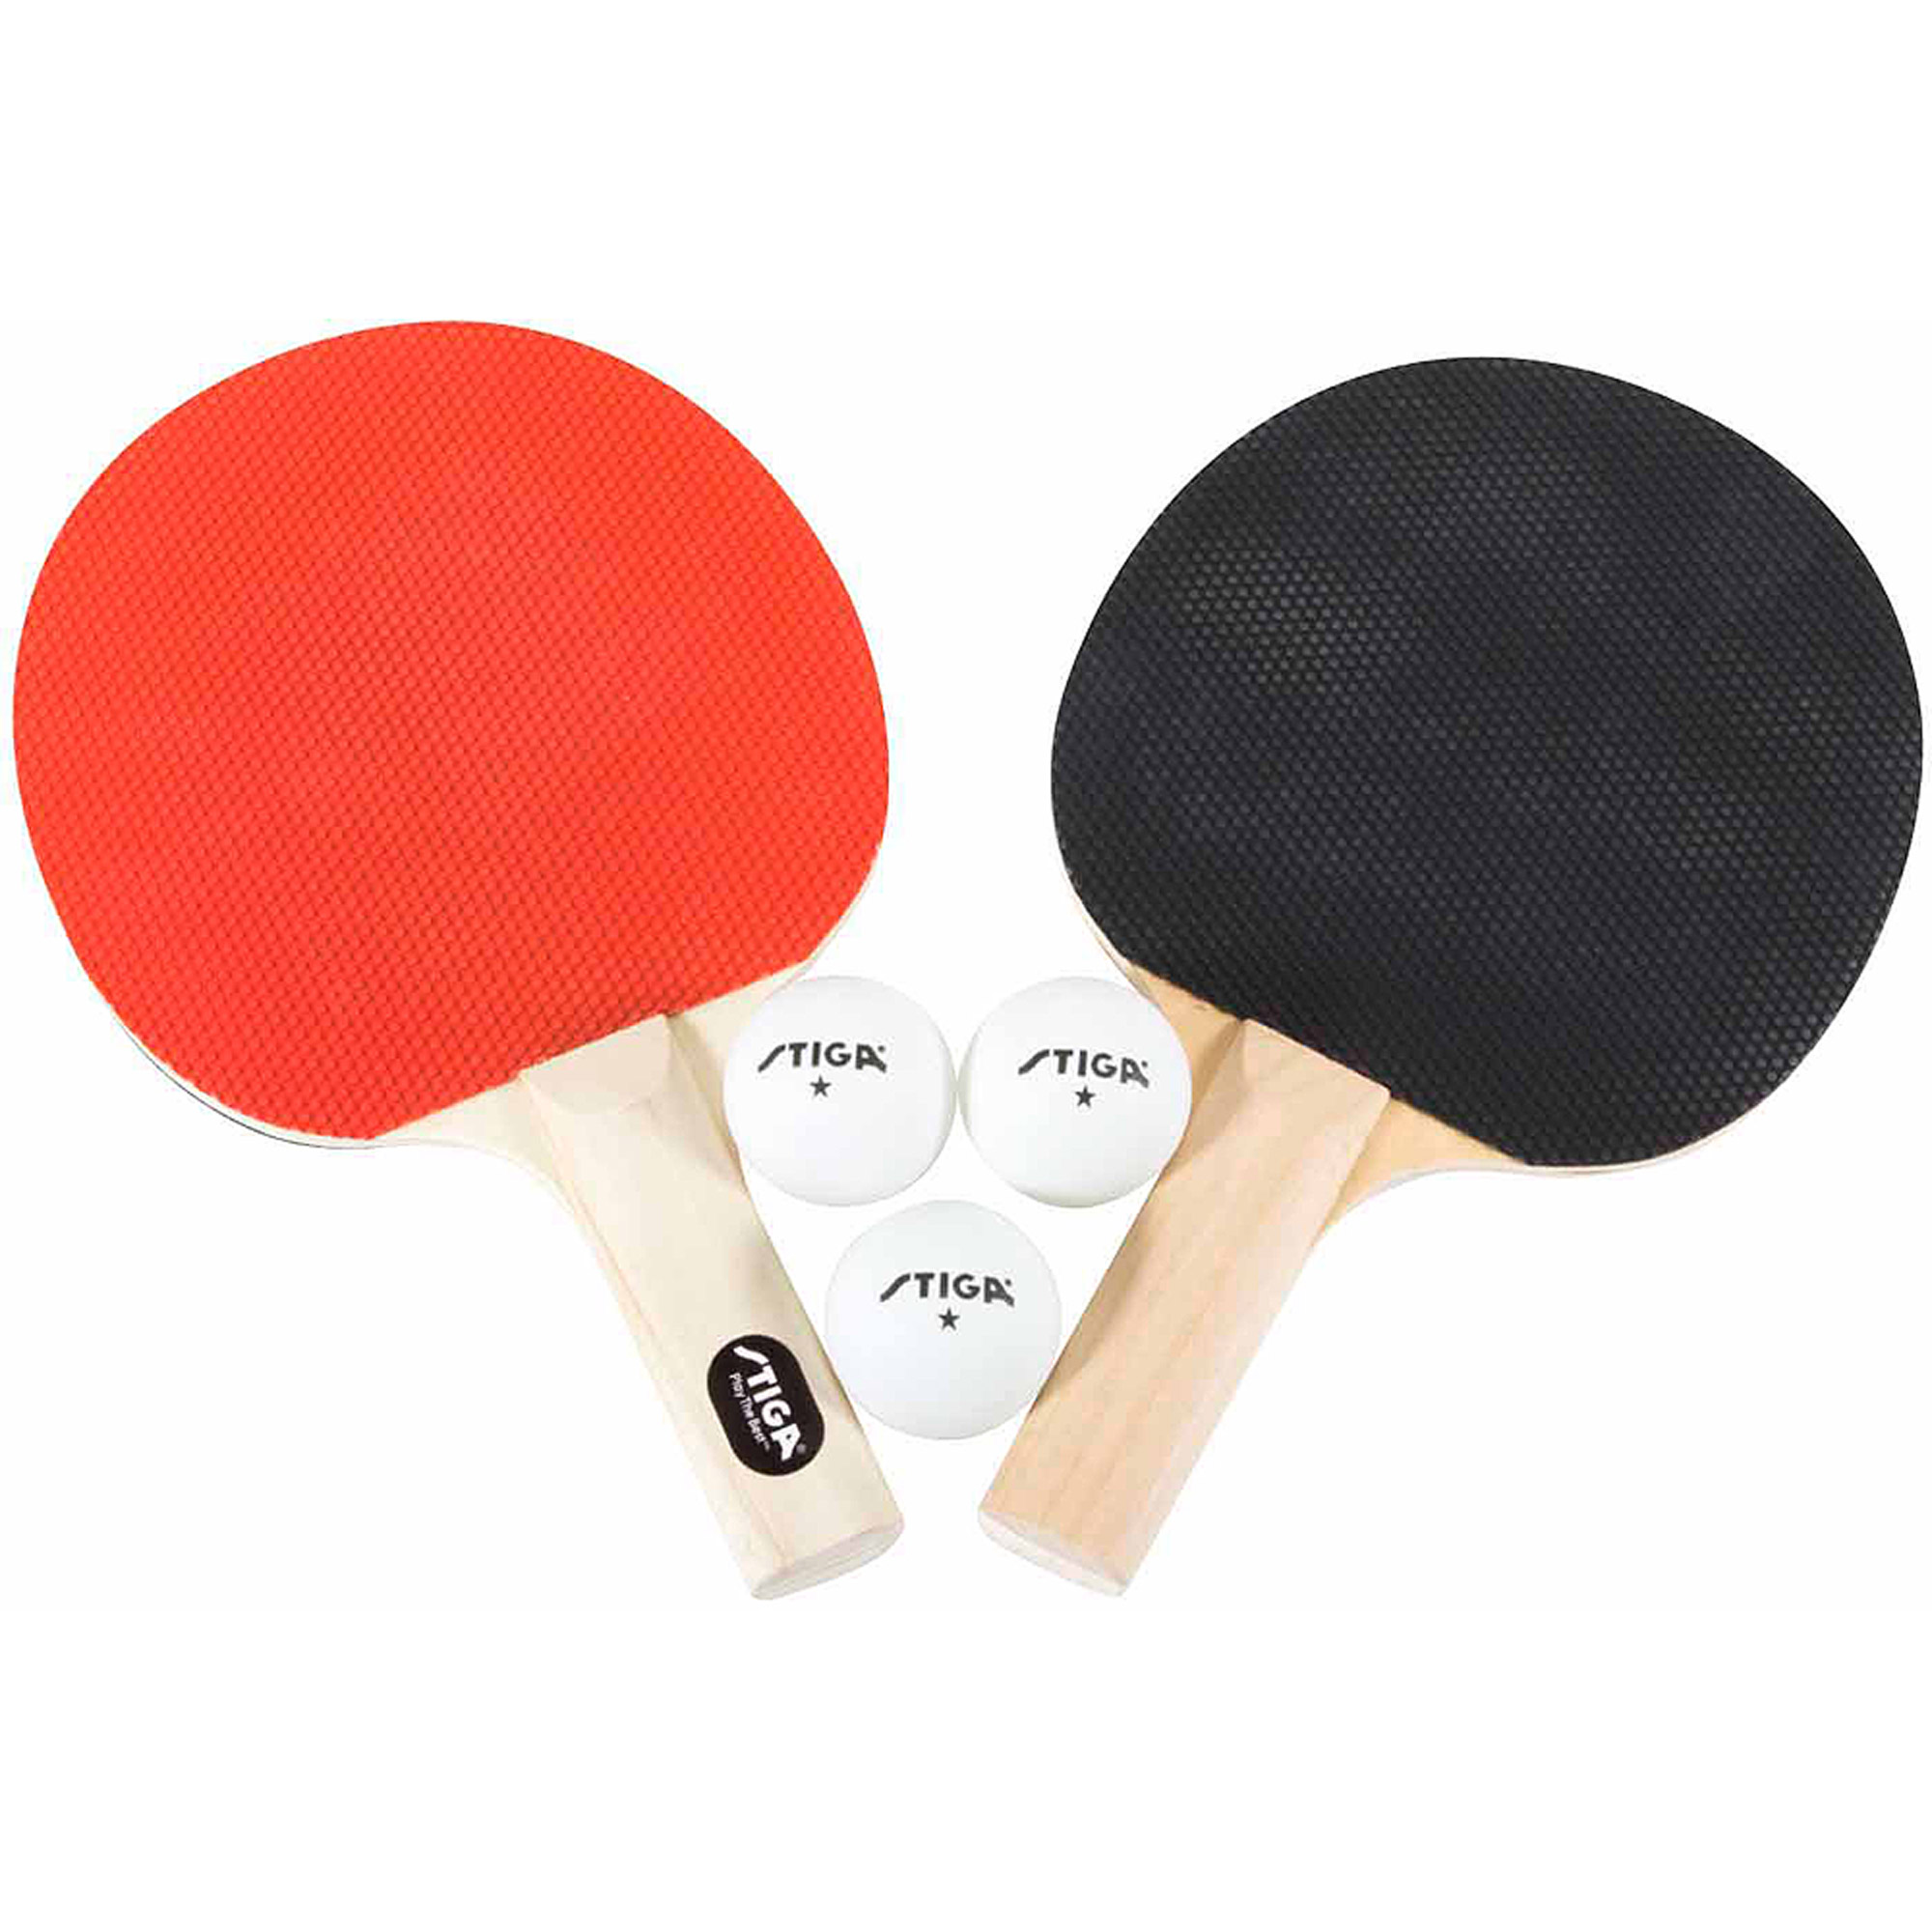 Stiga classic 4 player table tennis set for Table tennis